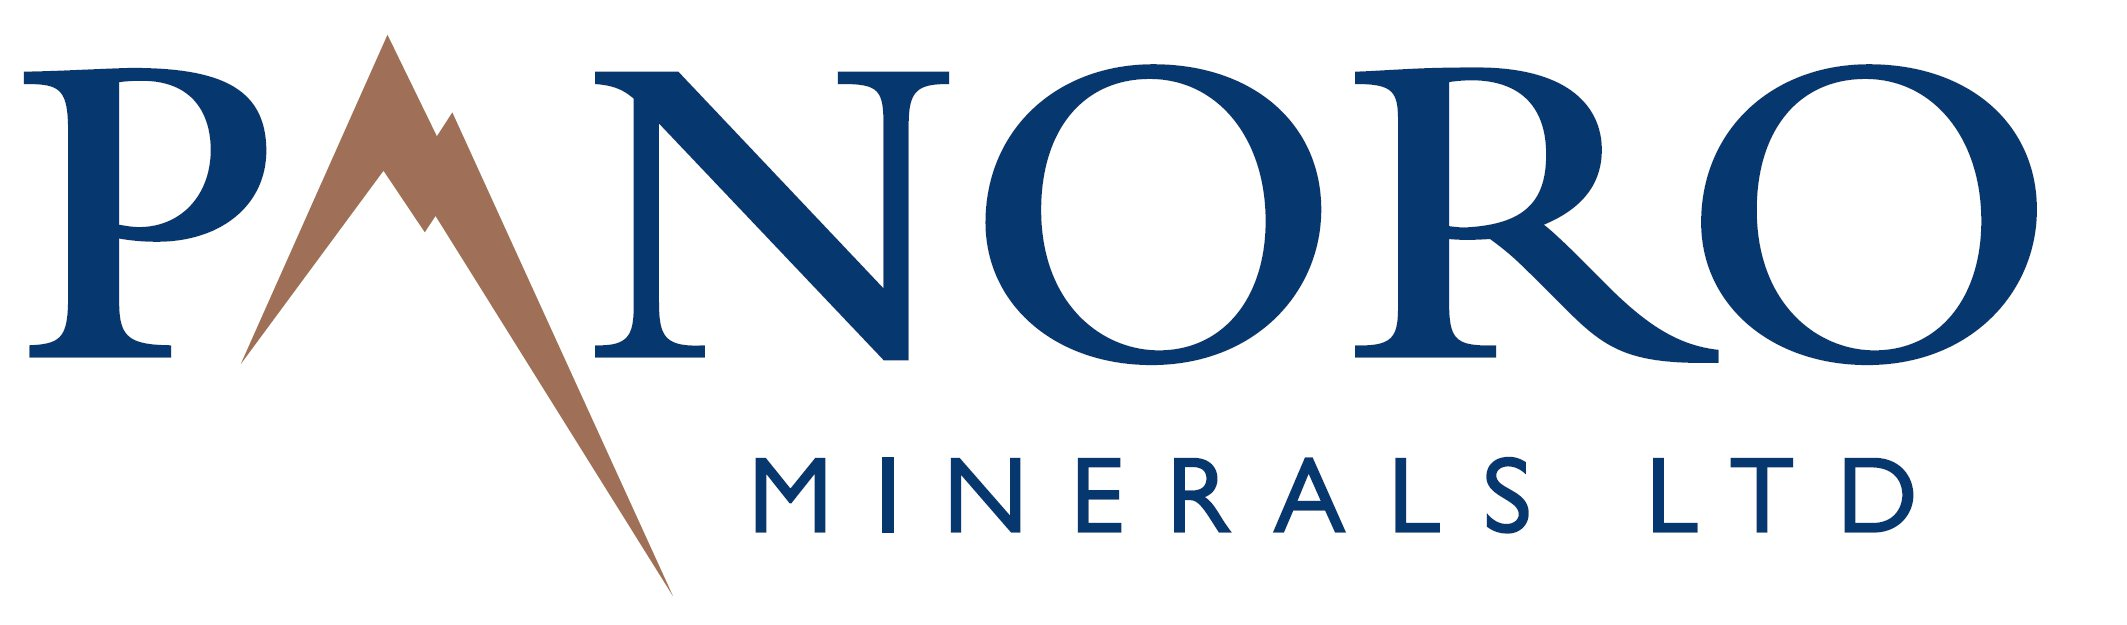 Panoro Minerals Announces Drilling Program at Humamantata Project, Peru